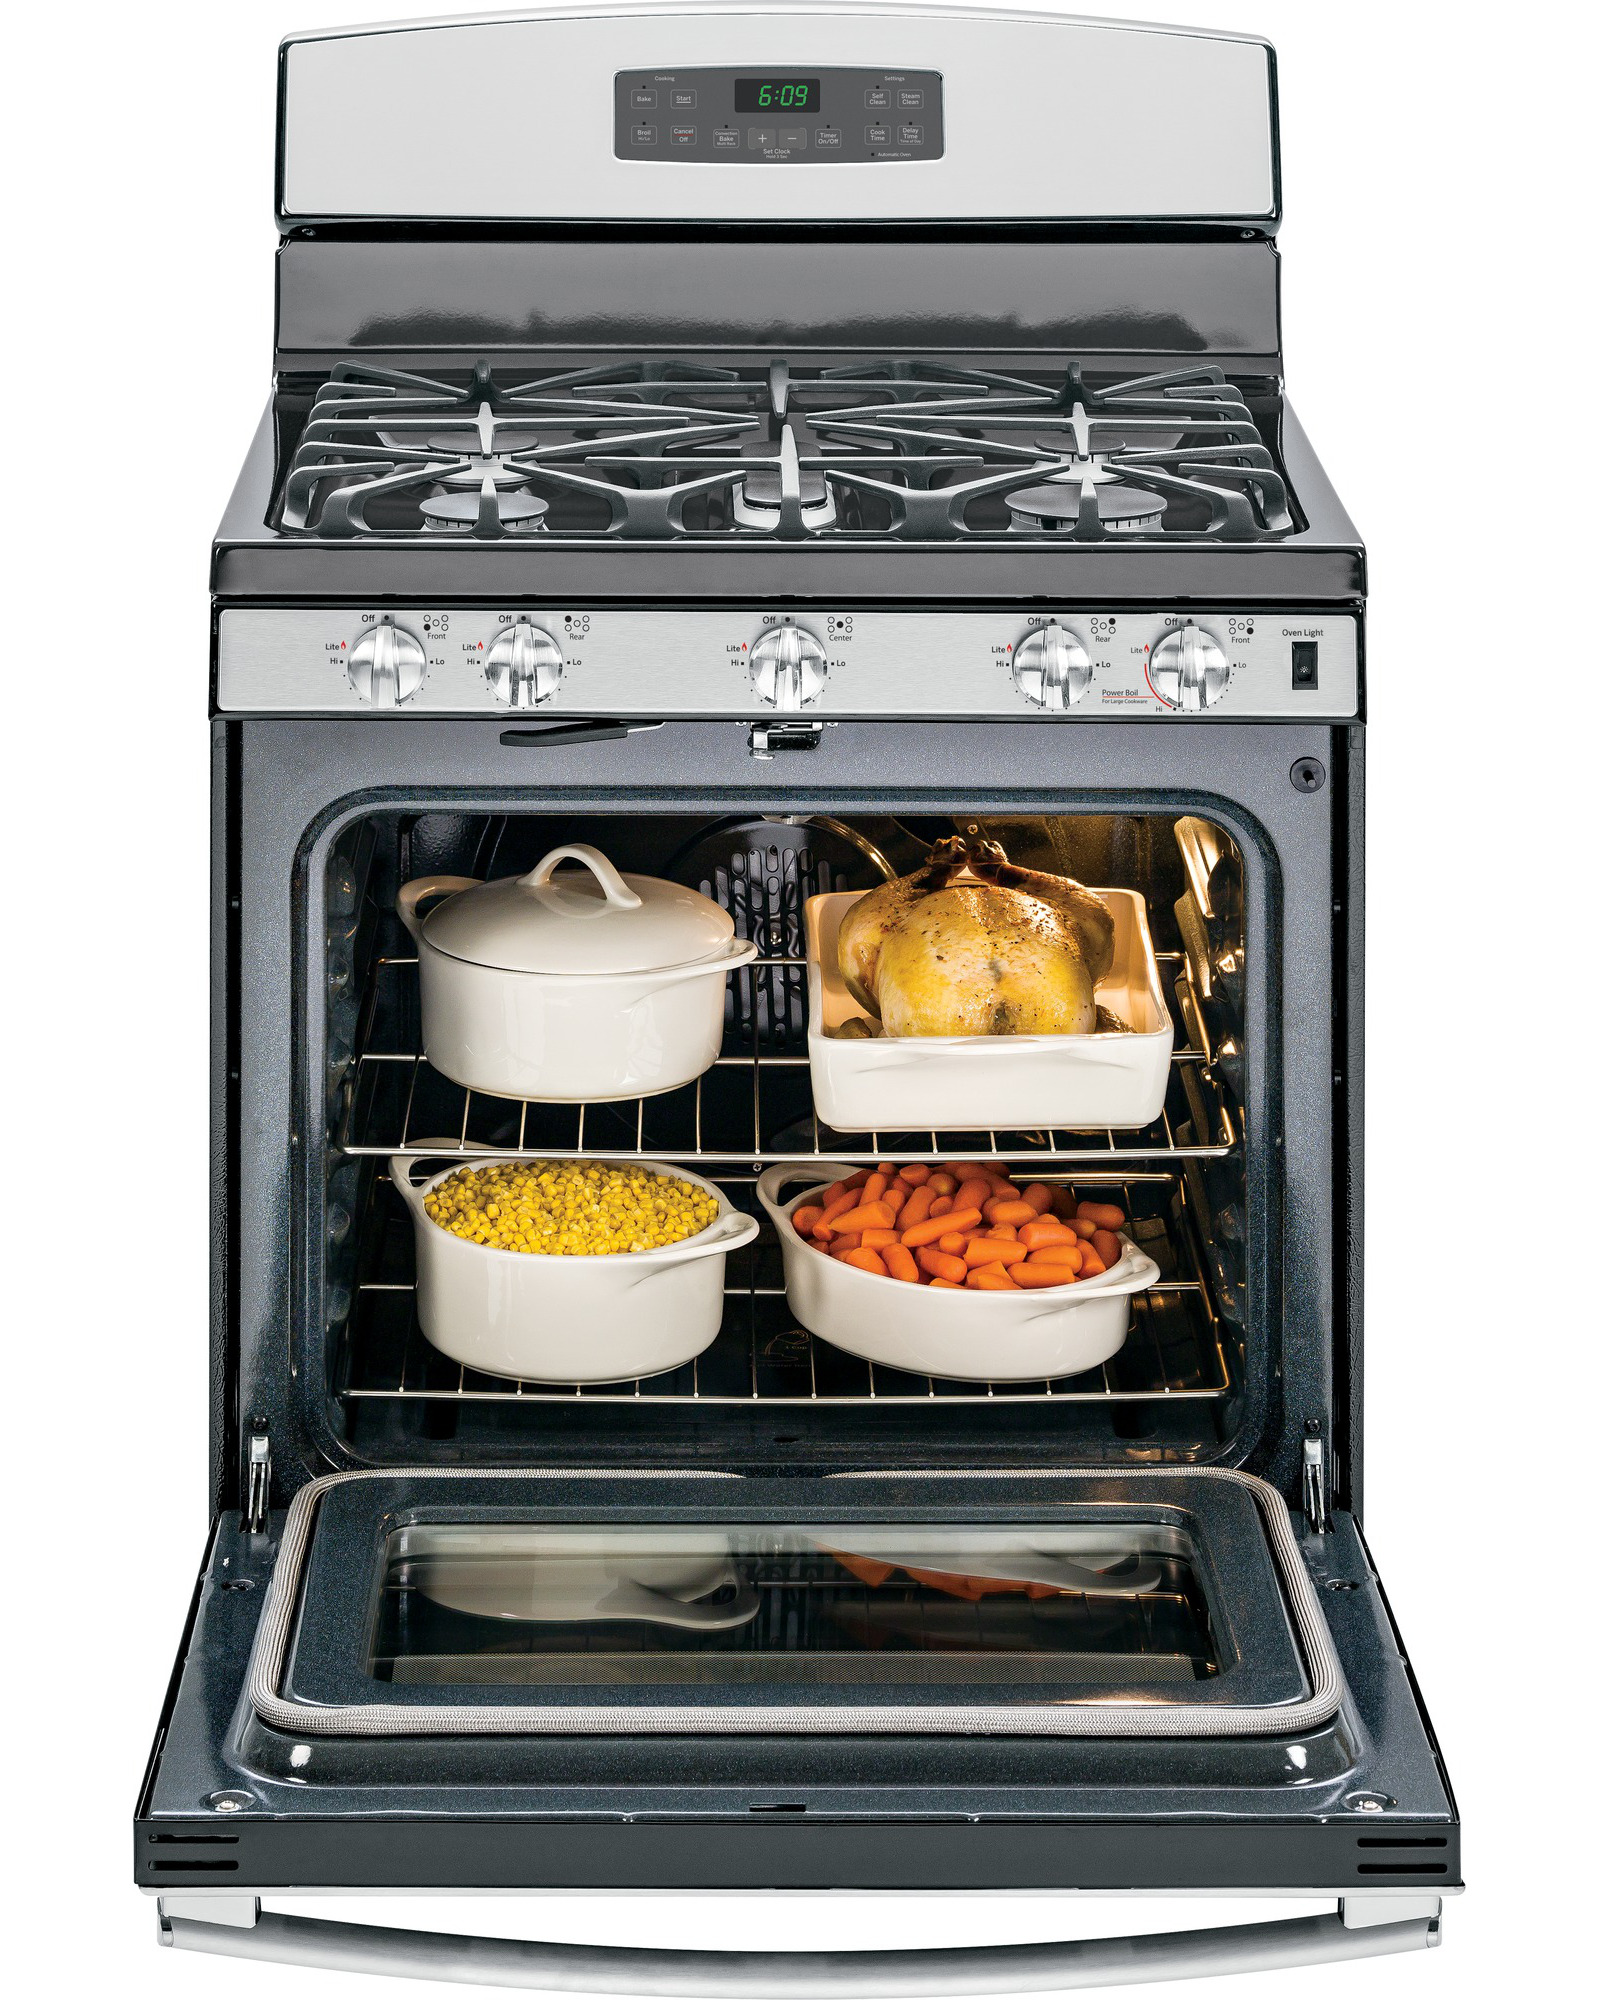 GE Appliances 5.0 cu. ft. Free-Standing Gas Convection Range - Stainless